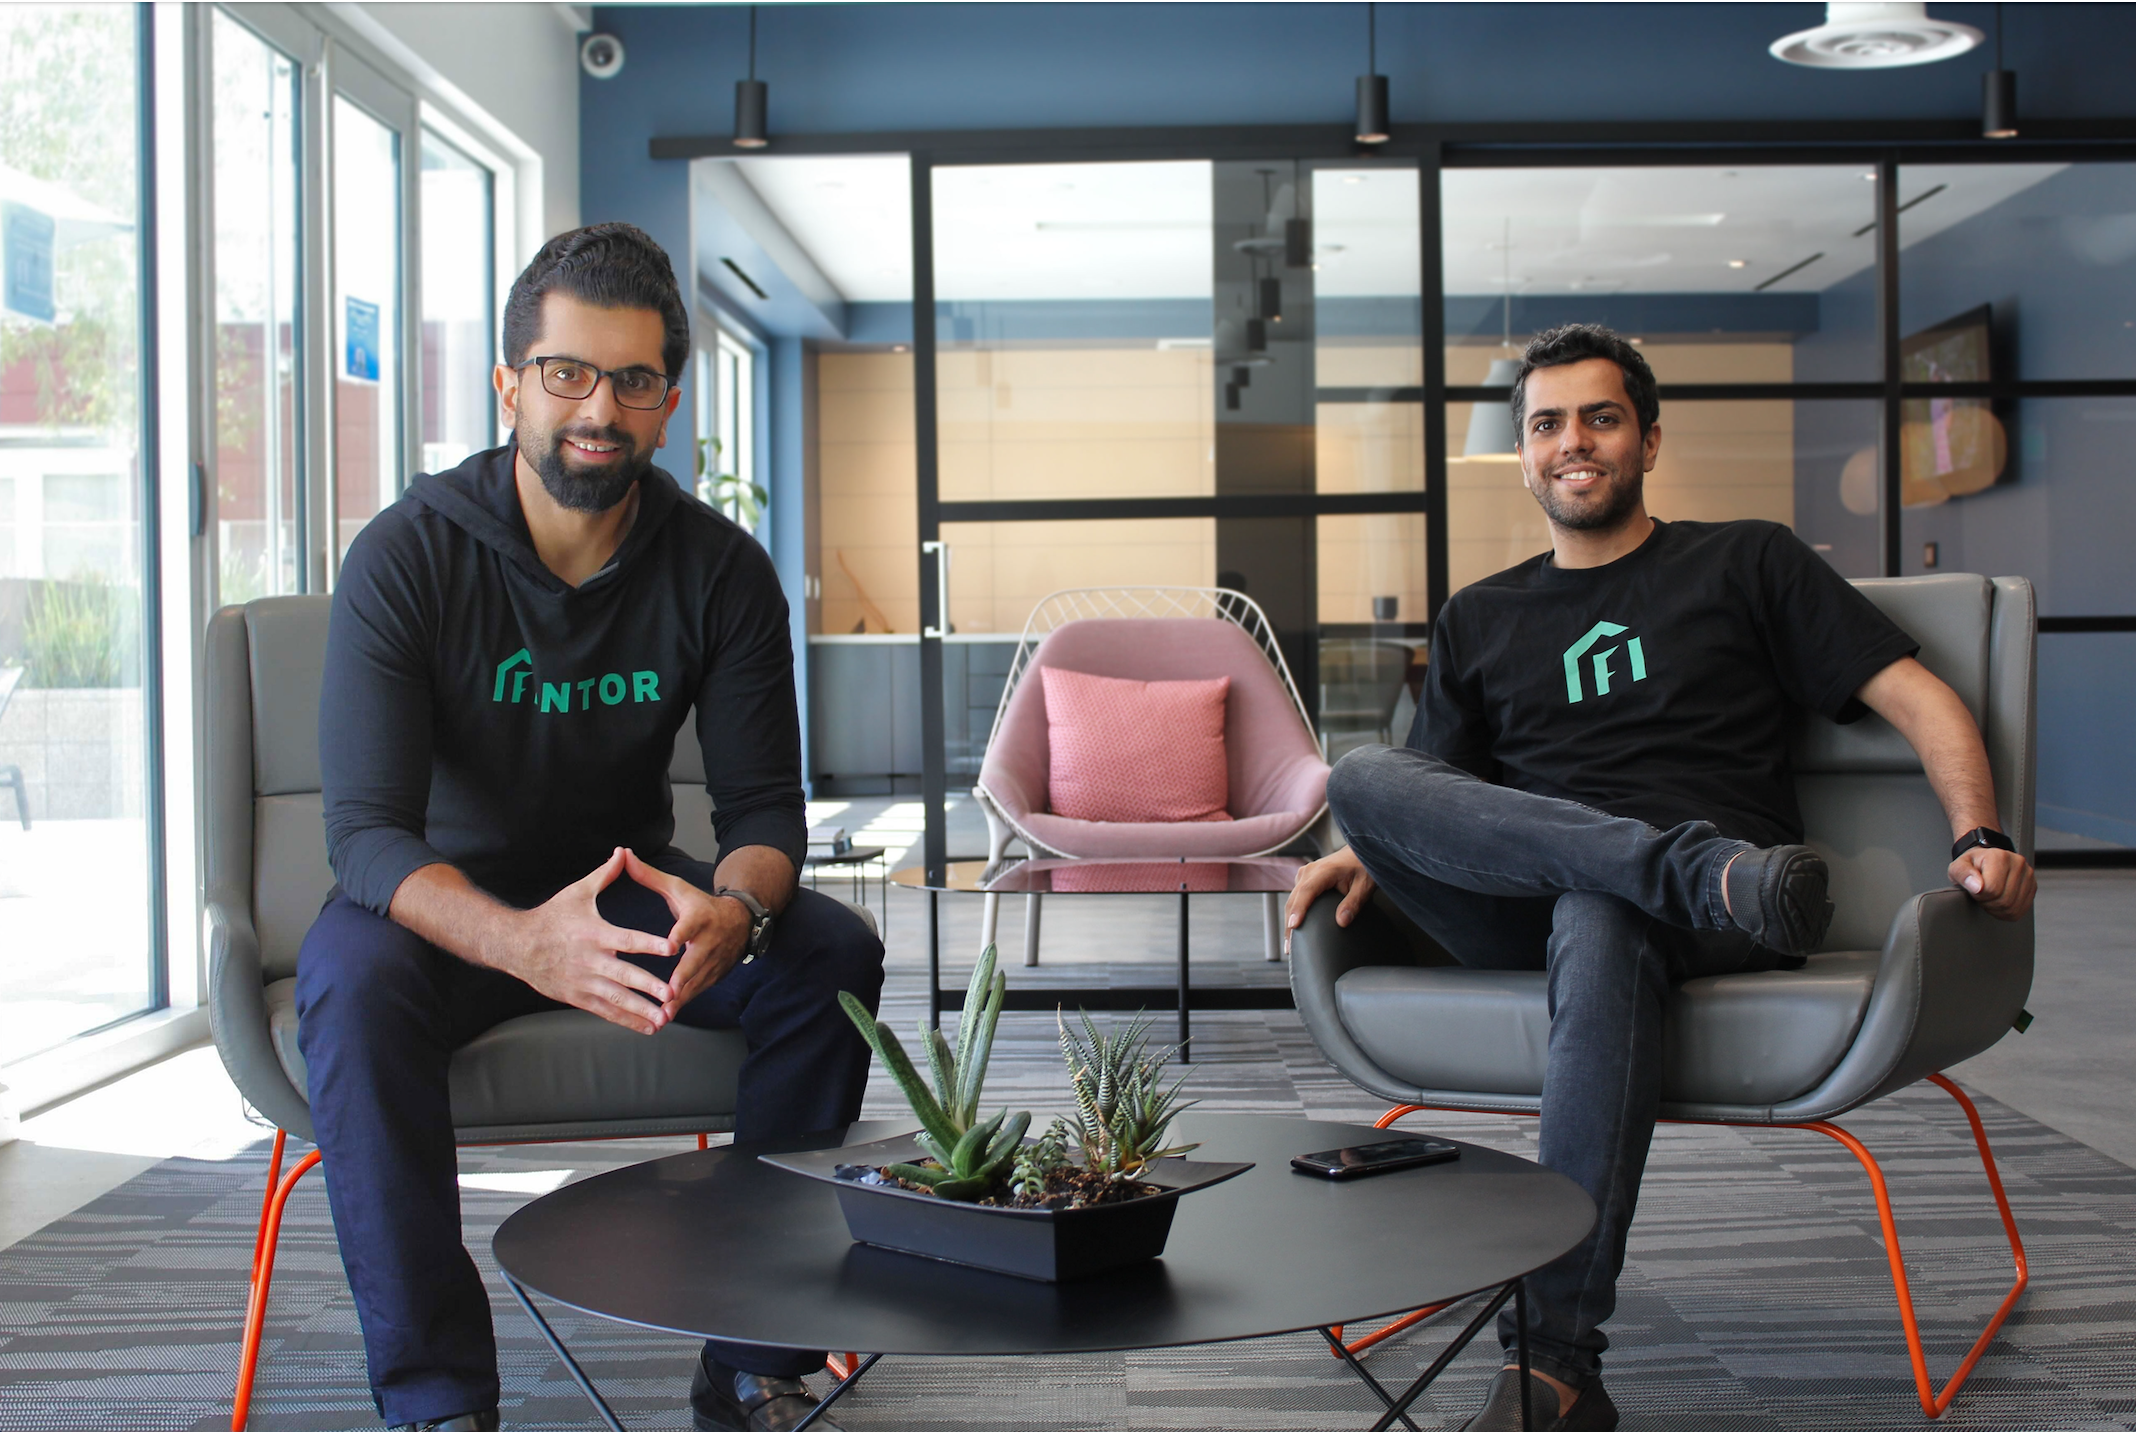 Fintor Wants to Make Real Estate Investing Accessible